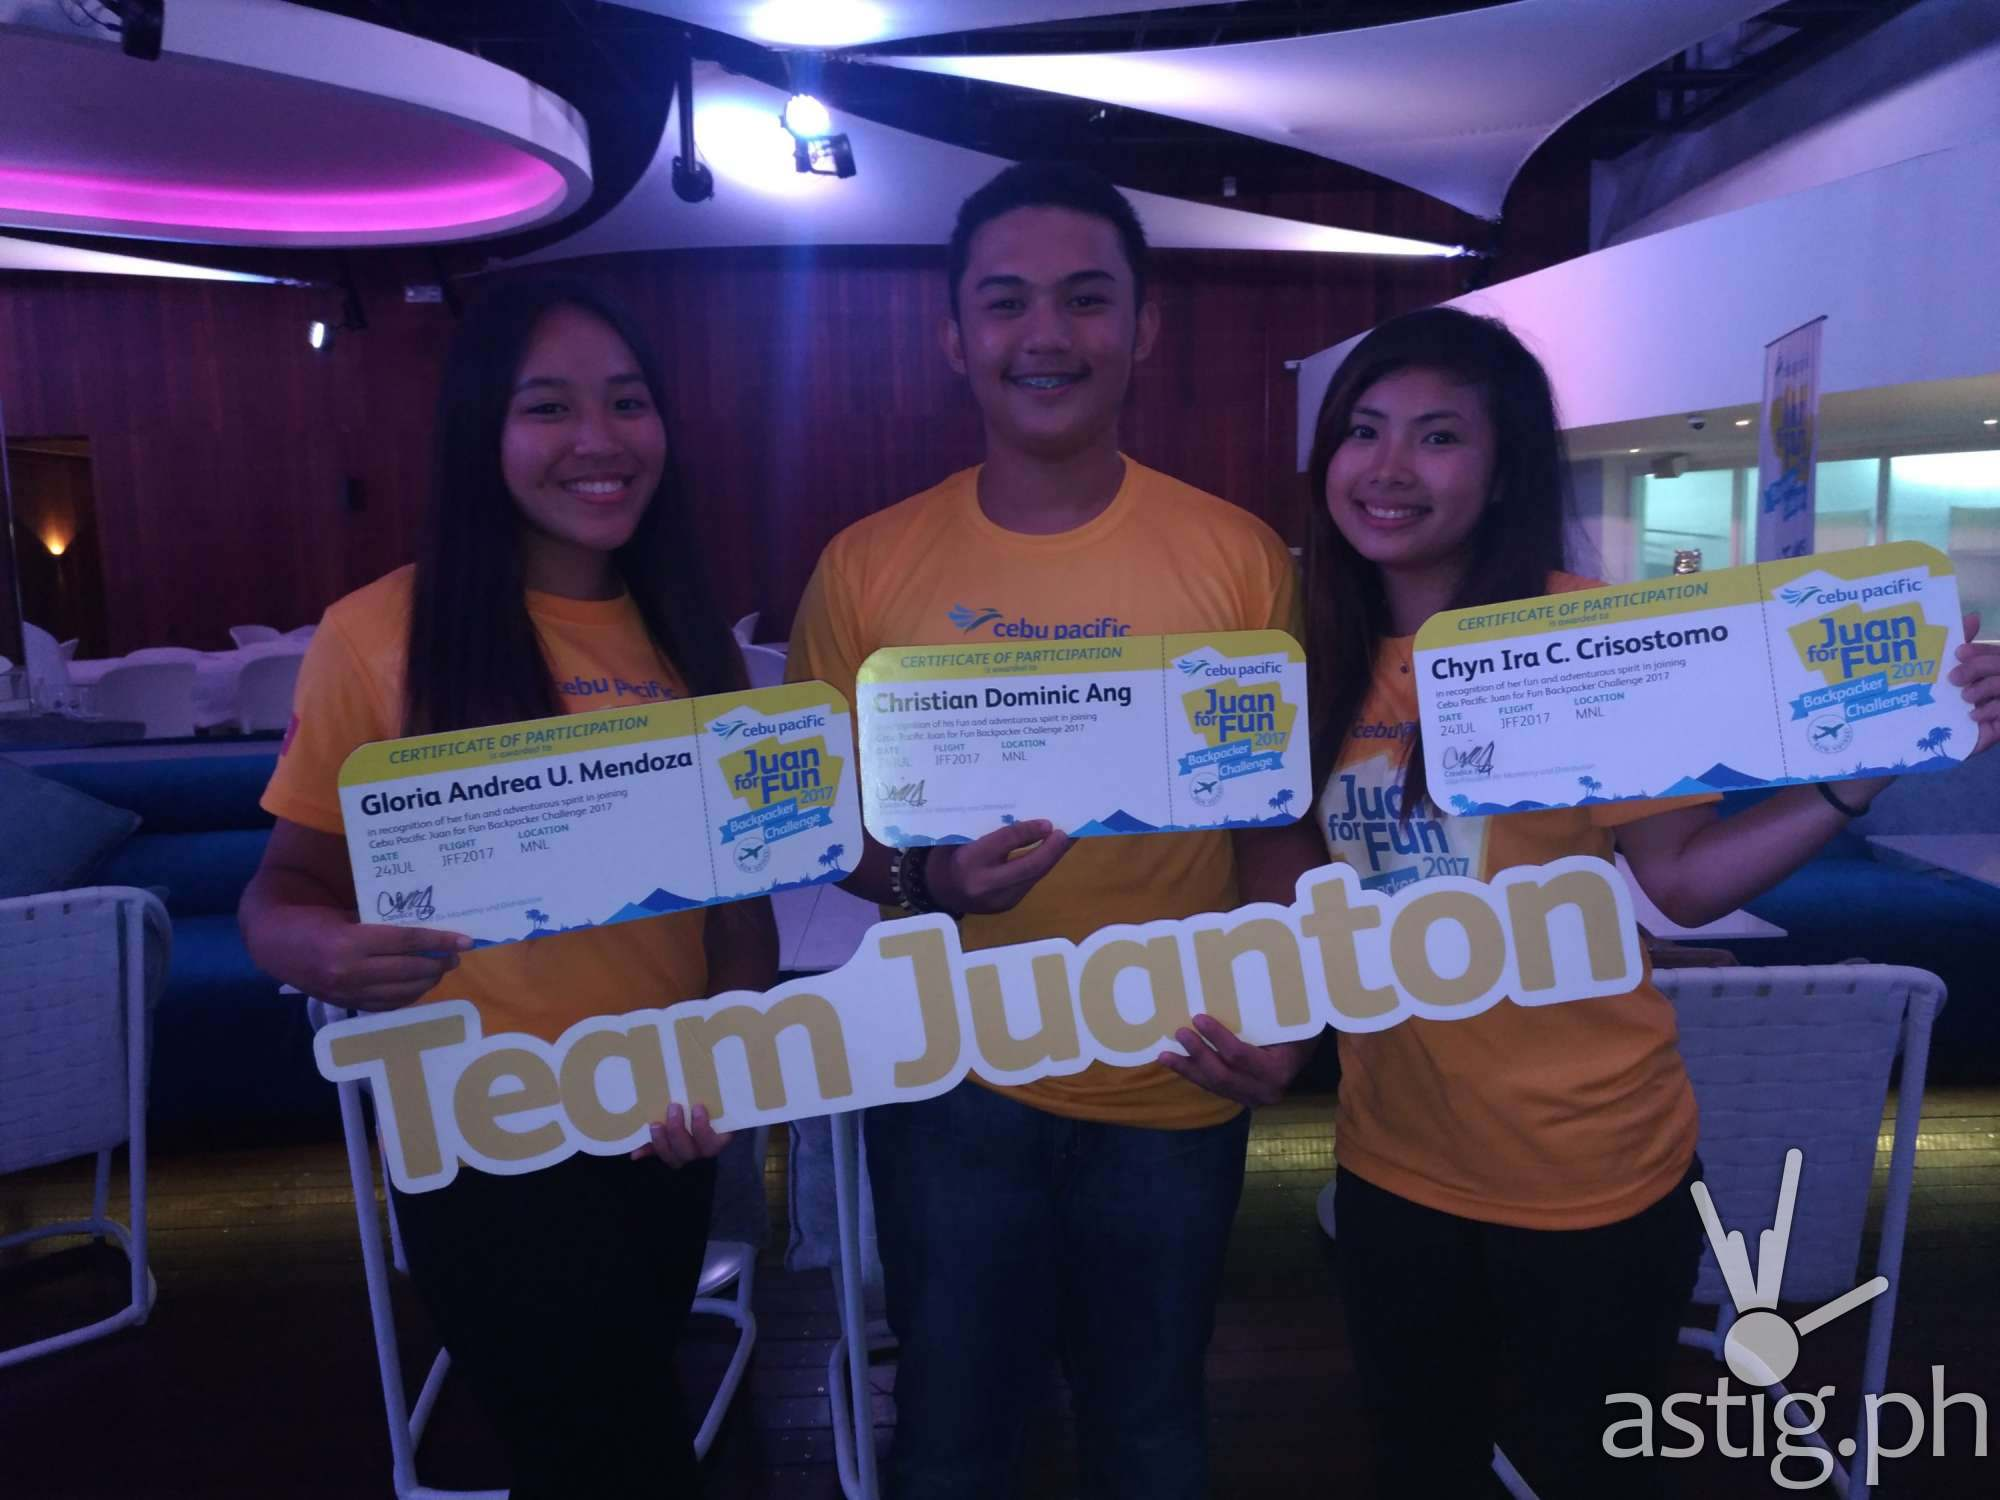 Geia, Chyn, and Cristian from Team Juanton are the winners of the Juan for Fun Backpacker Challenge from Cebu Pacific